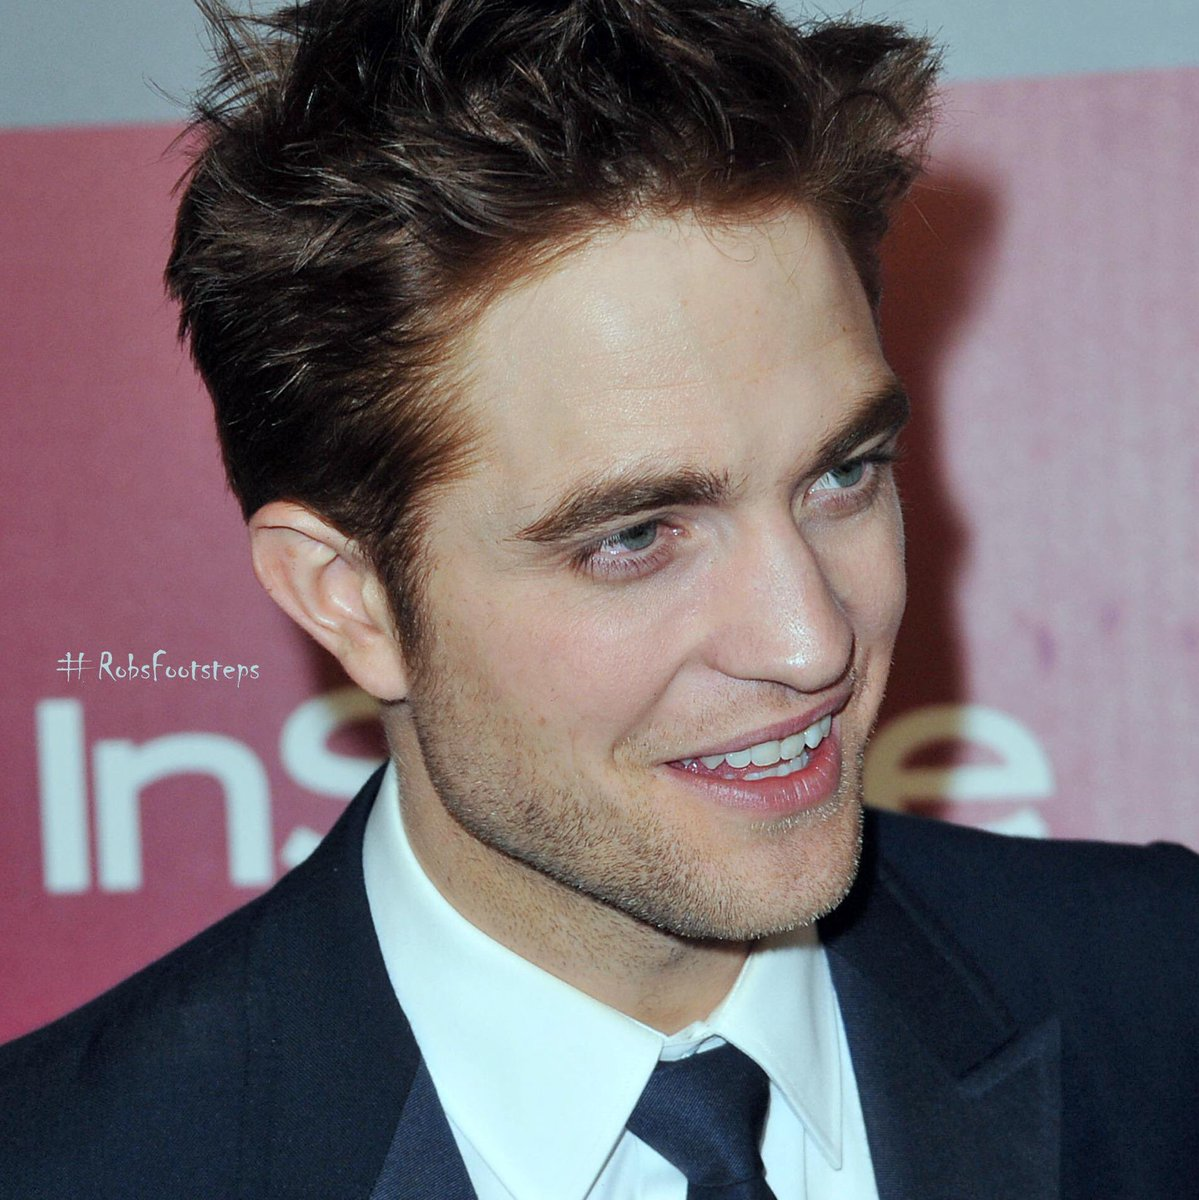 #RobertPattinson @goldenglobes InStyle after party 2010 Some RobSmiles to give the day a positive start  <br>http://pic.twitter.com/TX01i9DFJR